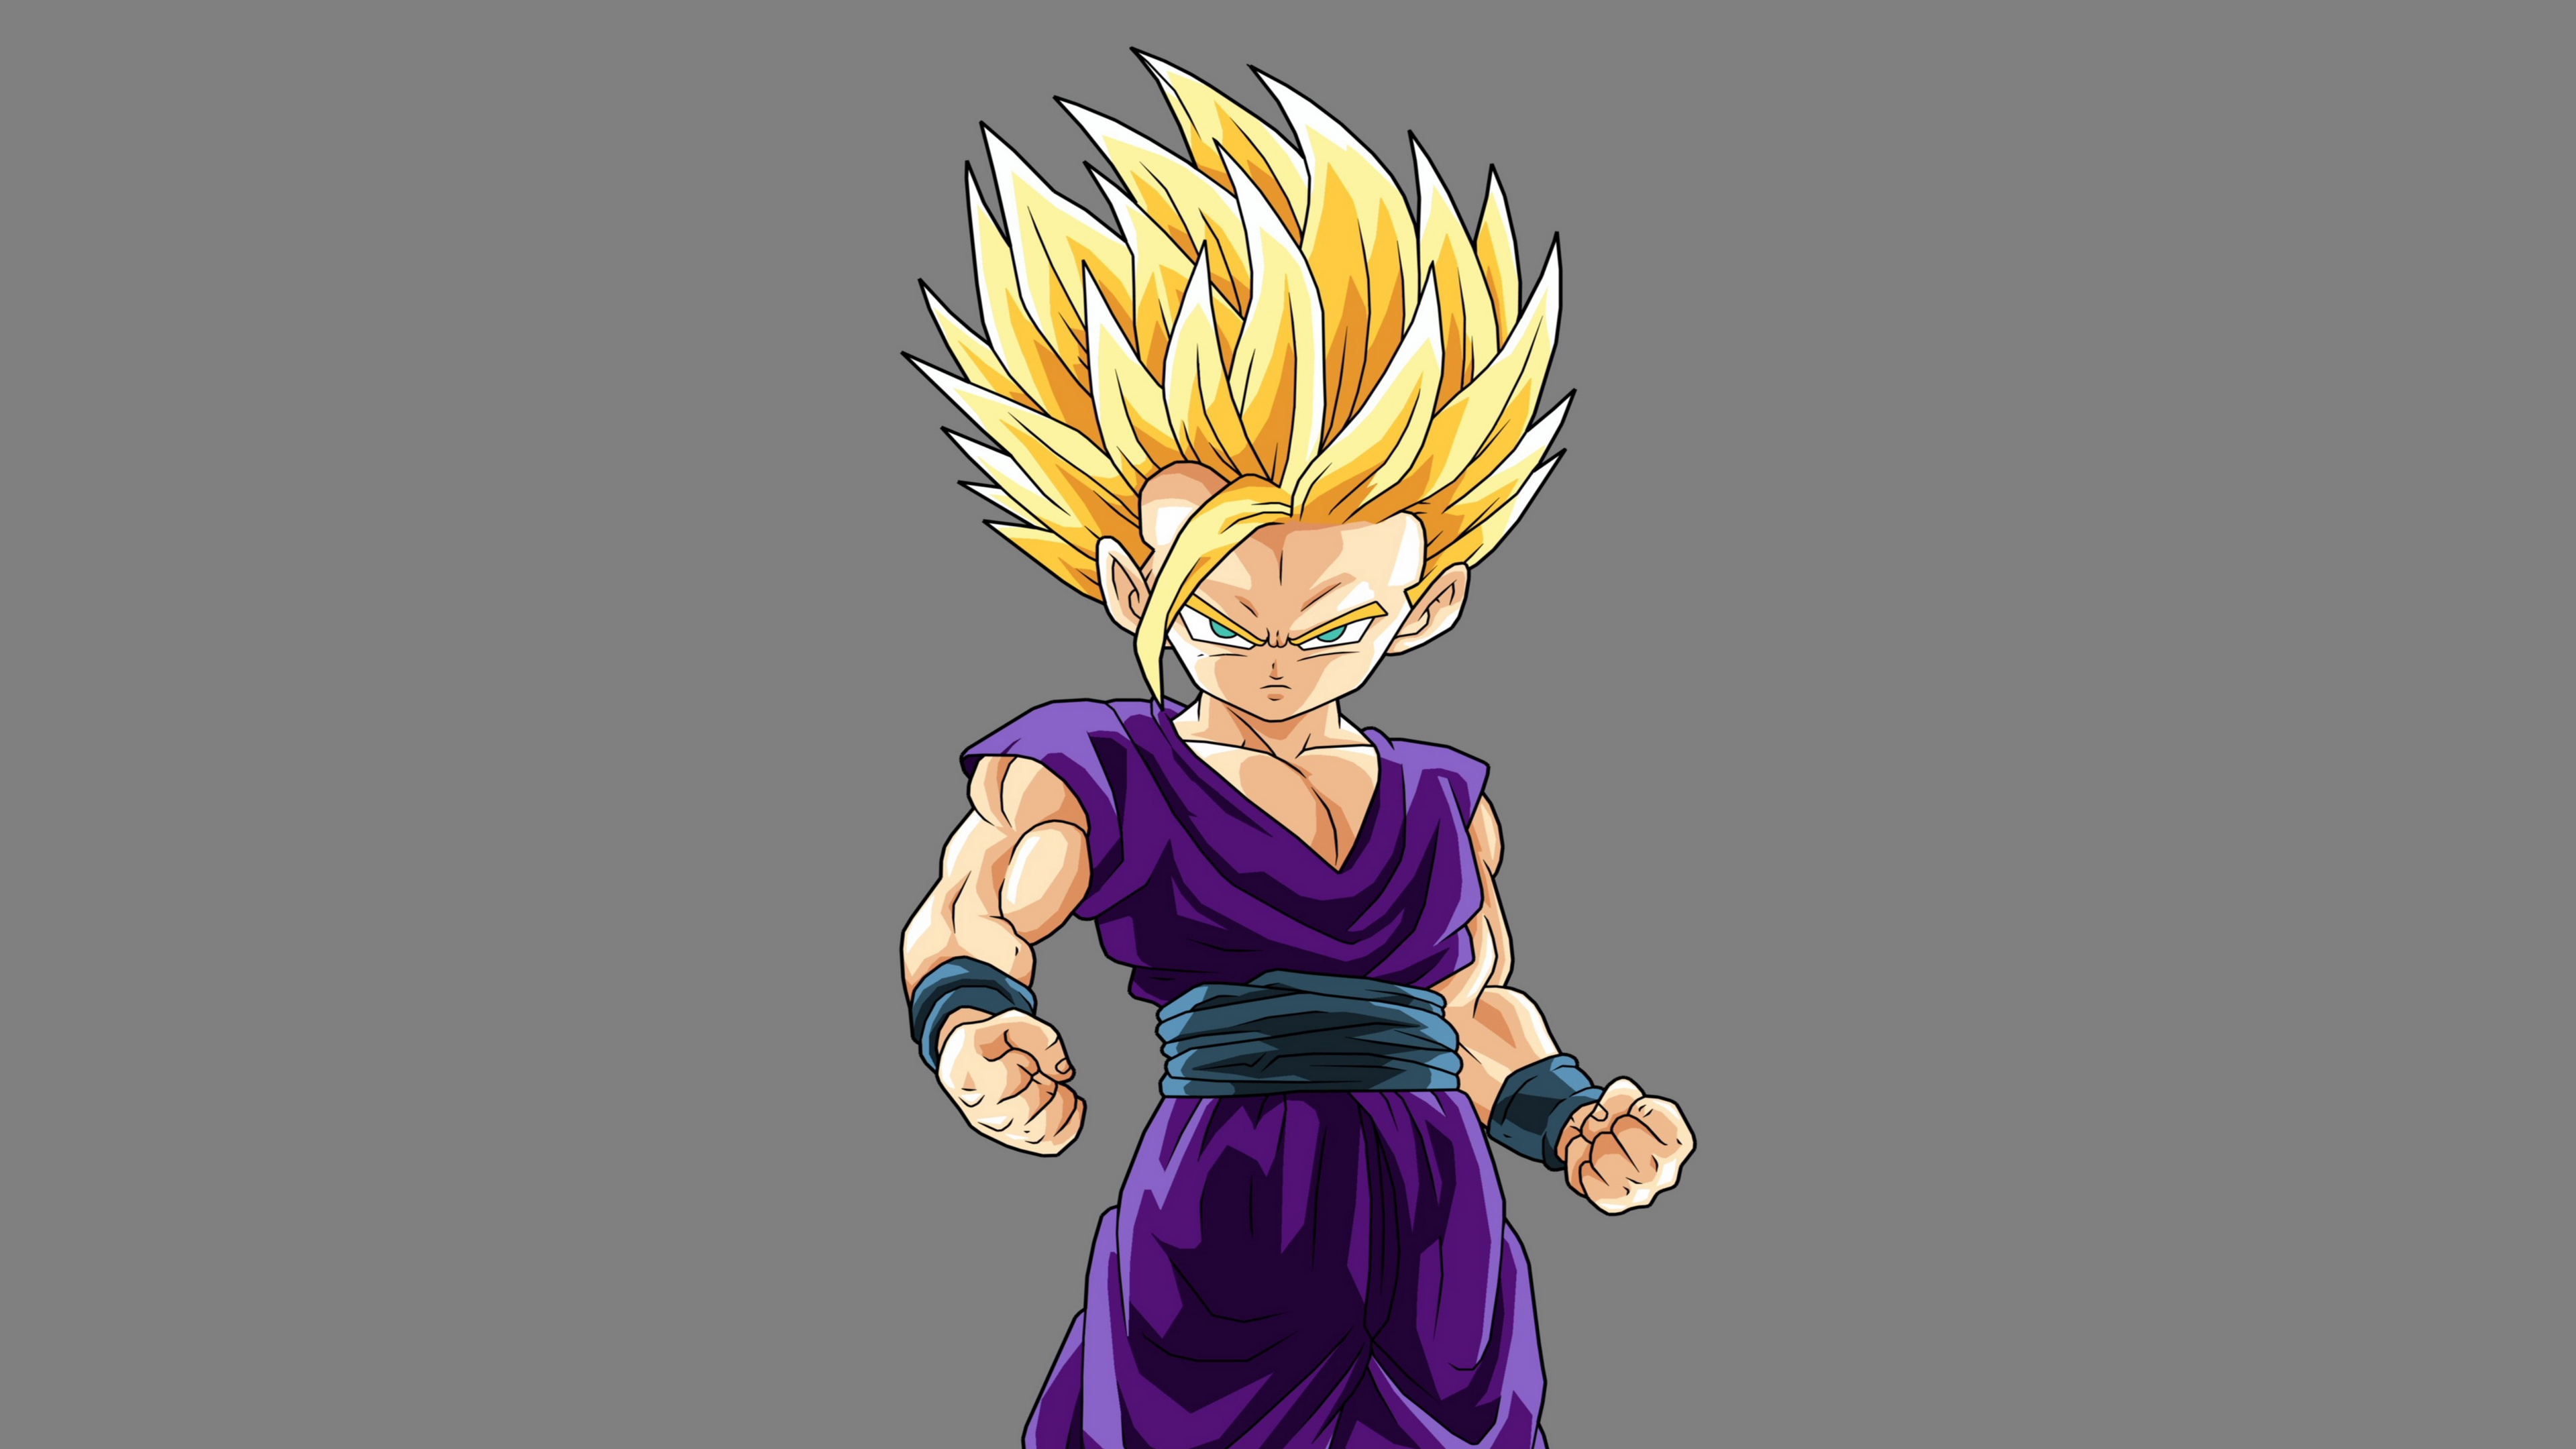 Wallpaper 4k Dragon Ball Z Gohan Art 4k Art Dragon Ball Z Gohan